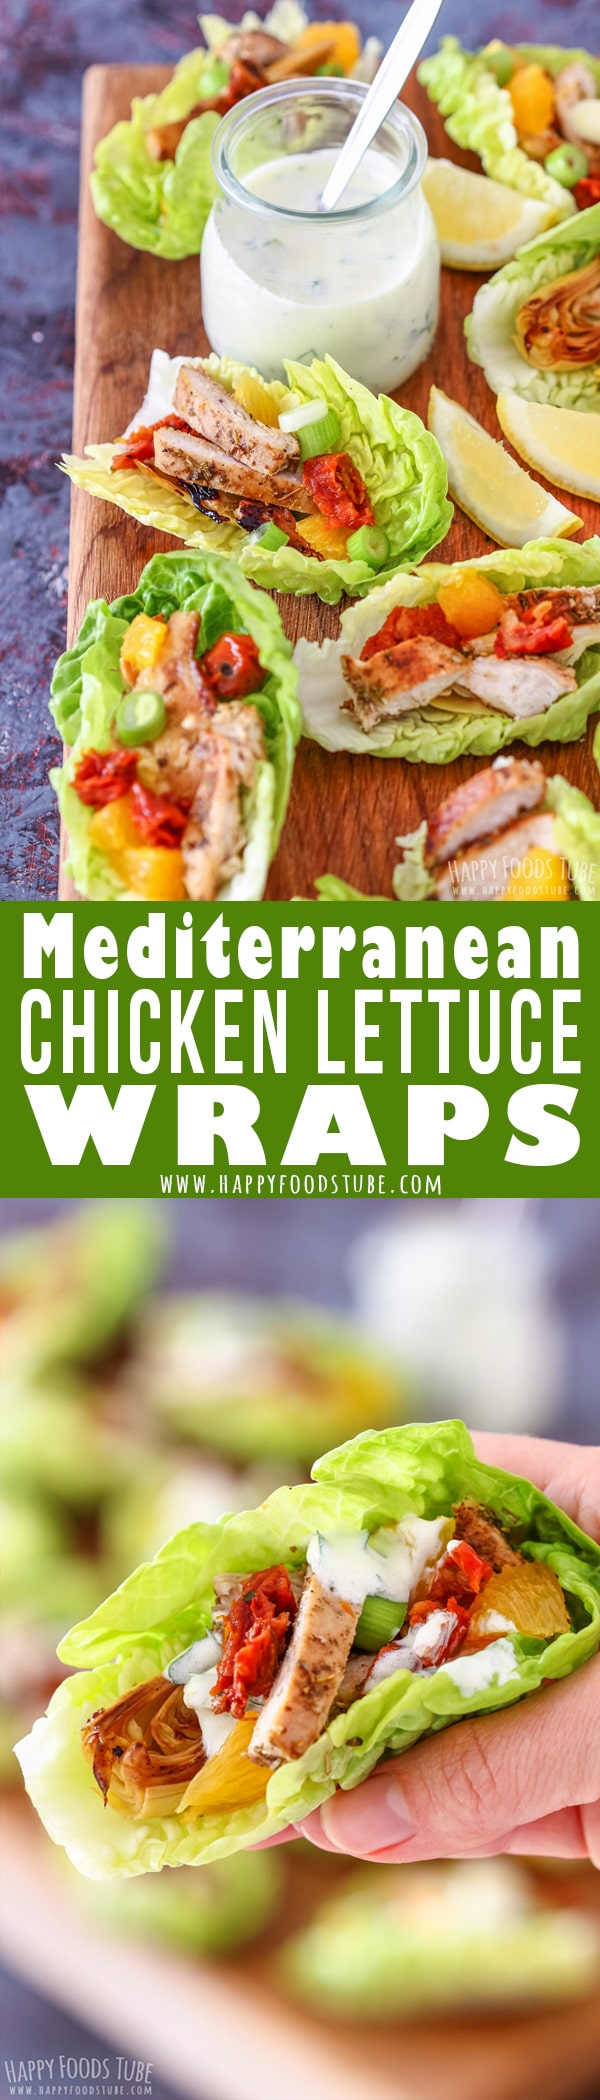 These Mediterranean chicken lettuce wraps are healthy, refreshing and full of Mediterranean flavors. Crispy romaine lettuce is topped with grilled chicken, artichokes, sun-dried tomatoes and oranges. #mediterranean #chicken #lettuce #wraps #recipes #healthy #appetizers #food #mediterraneanfood #mediterraneandiet #starter